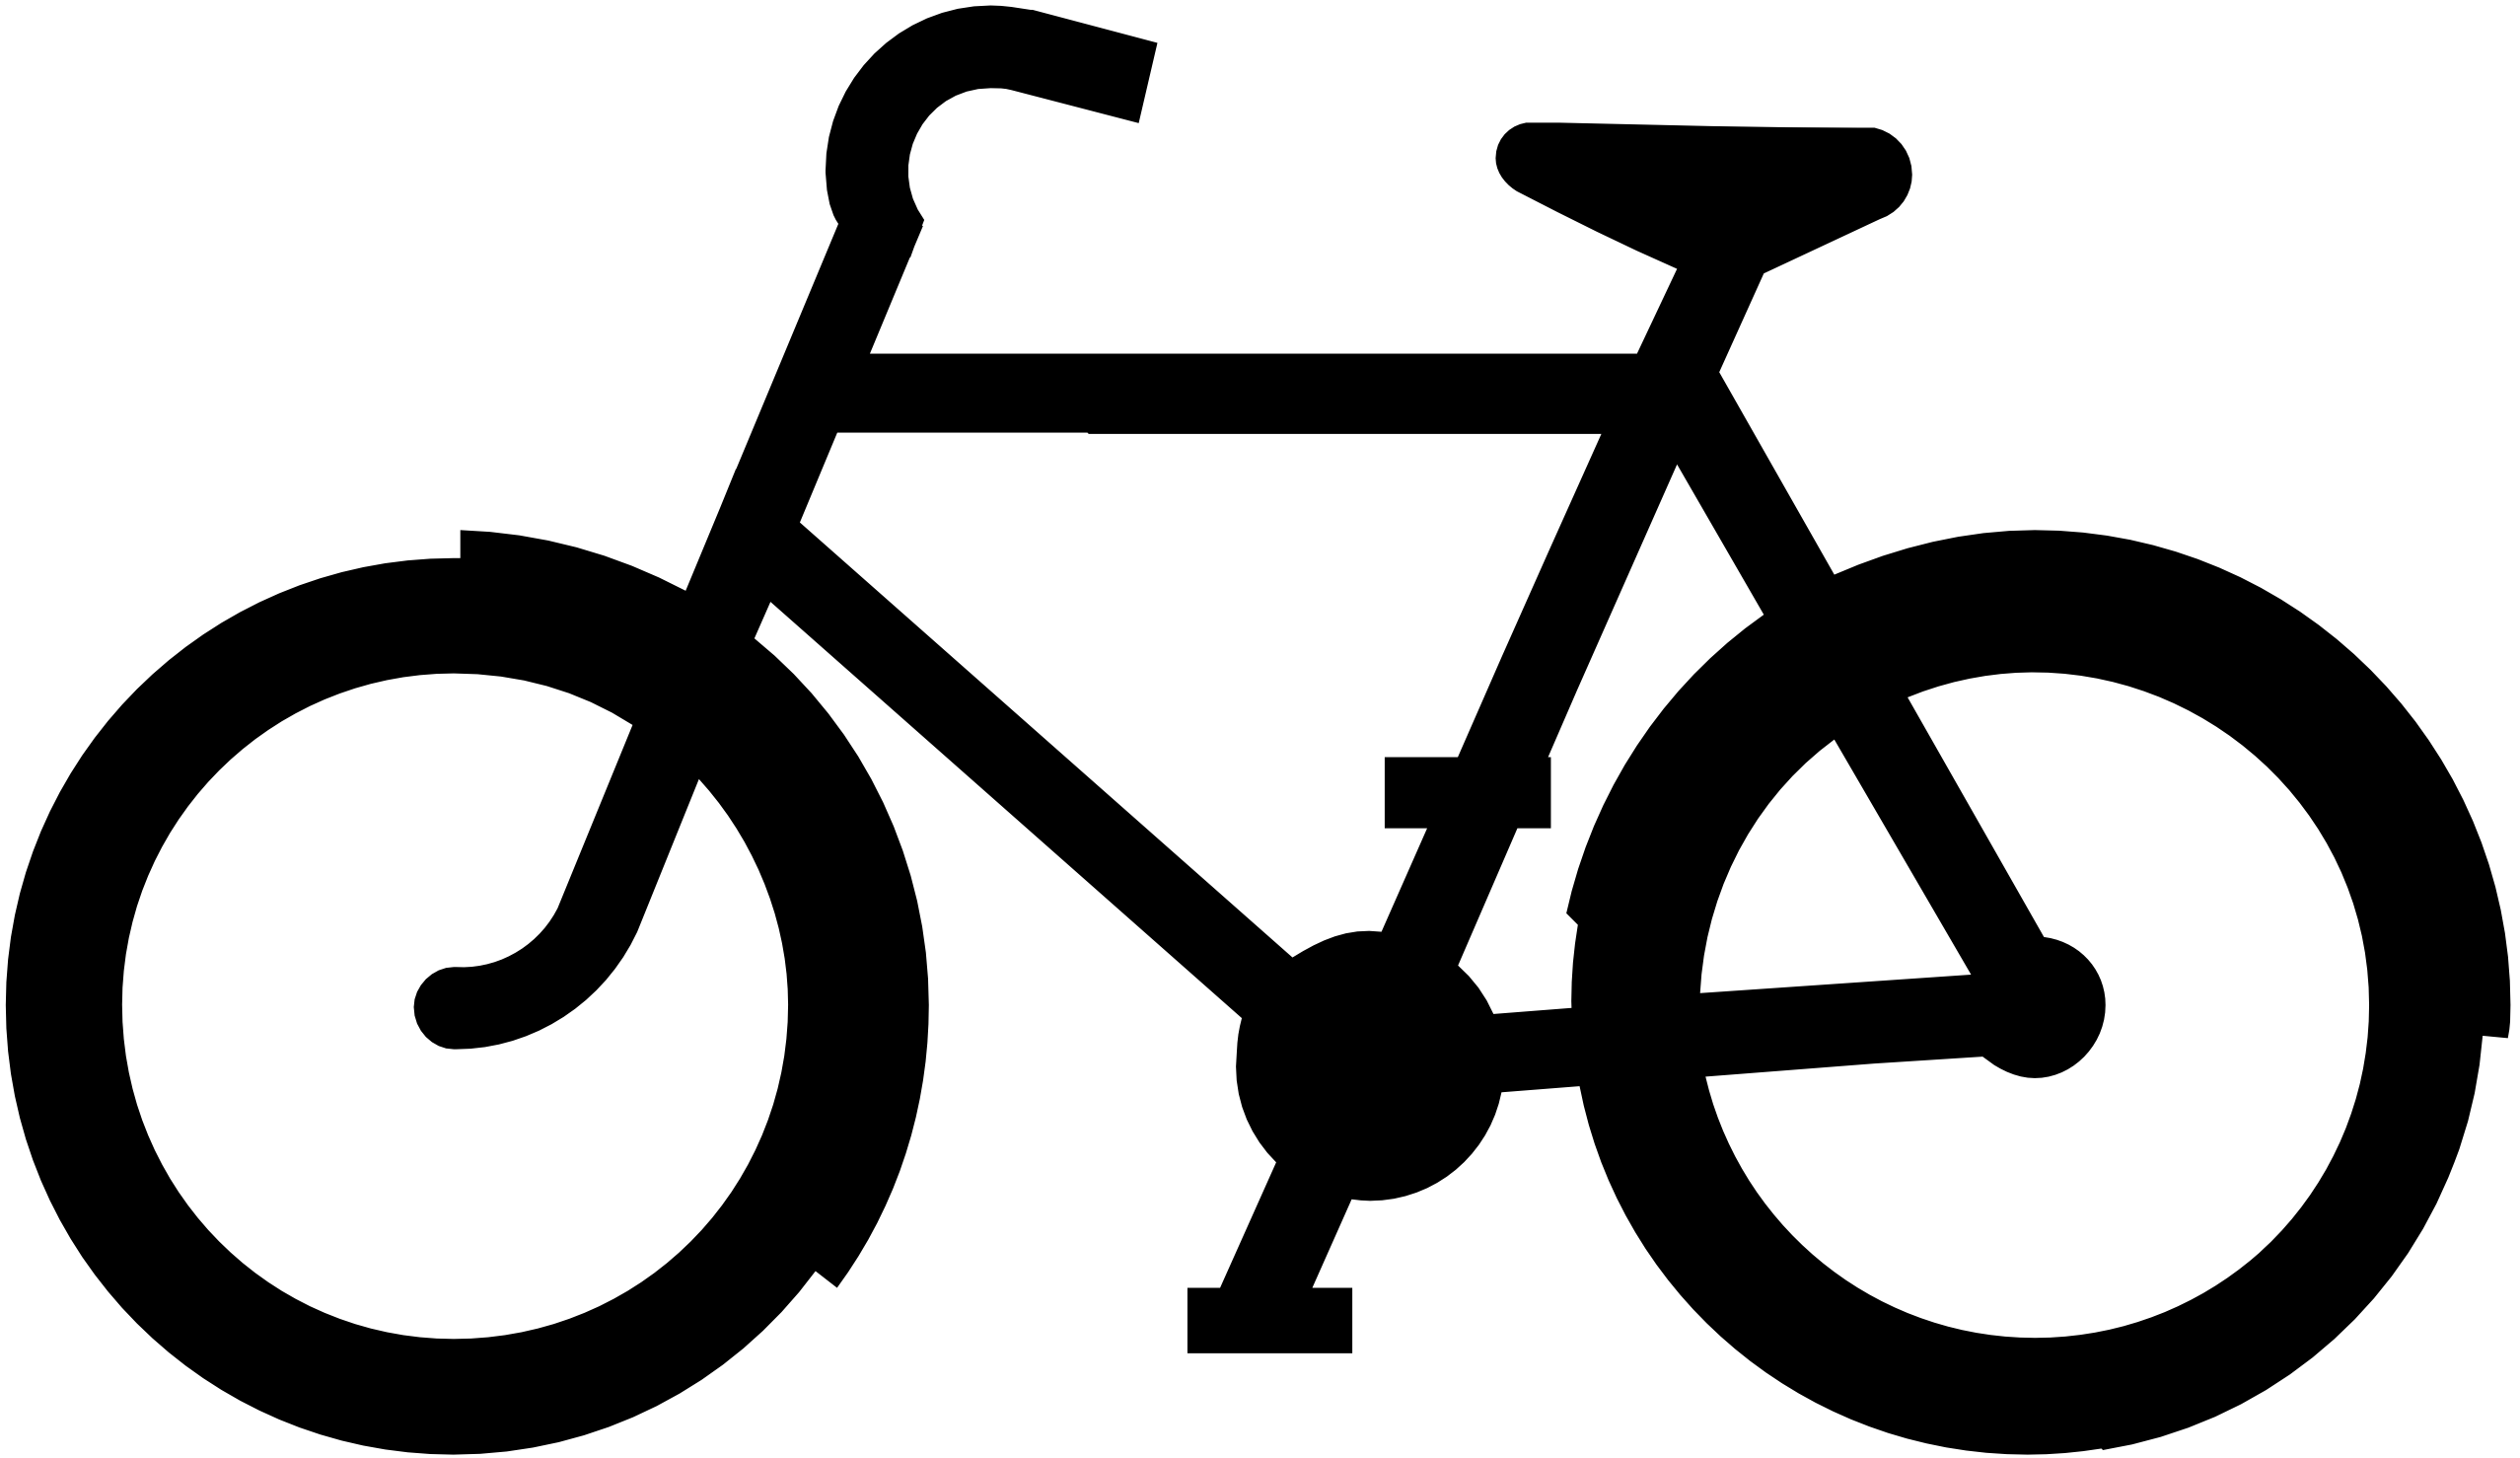 2555x1478 Bike Biking Clip Art Homedede